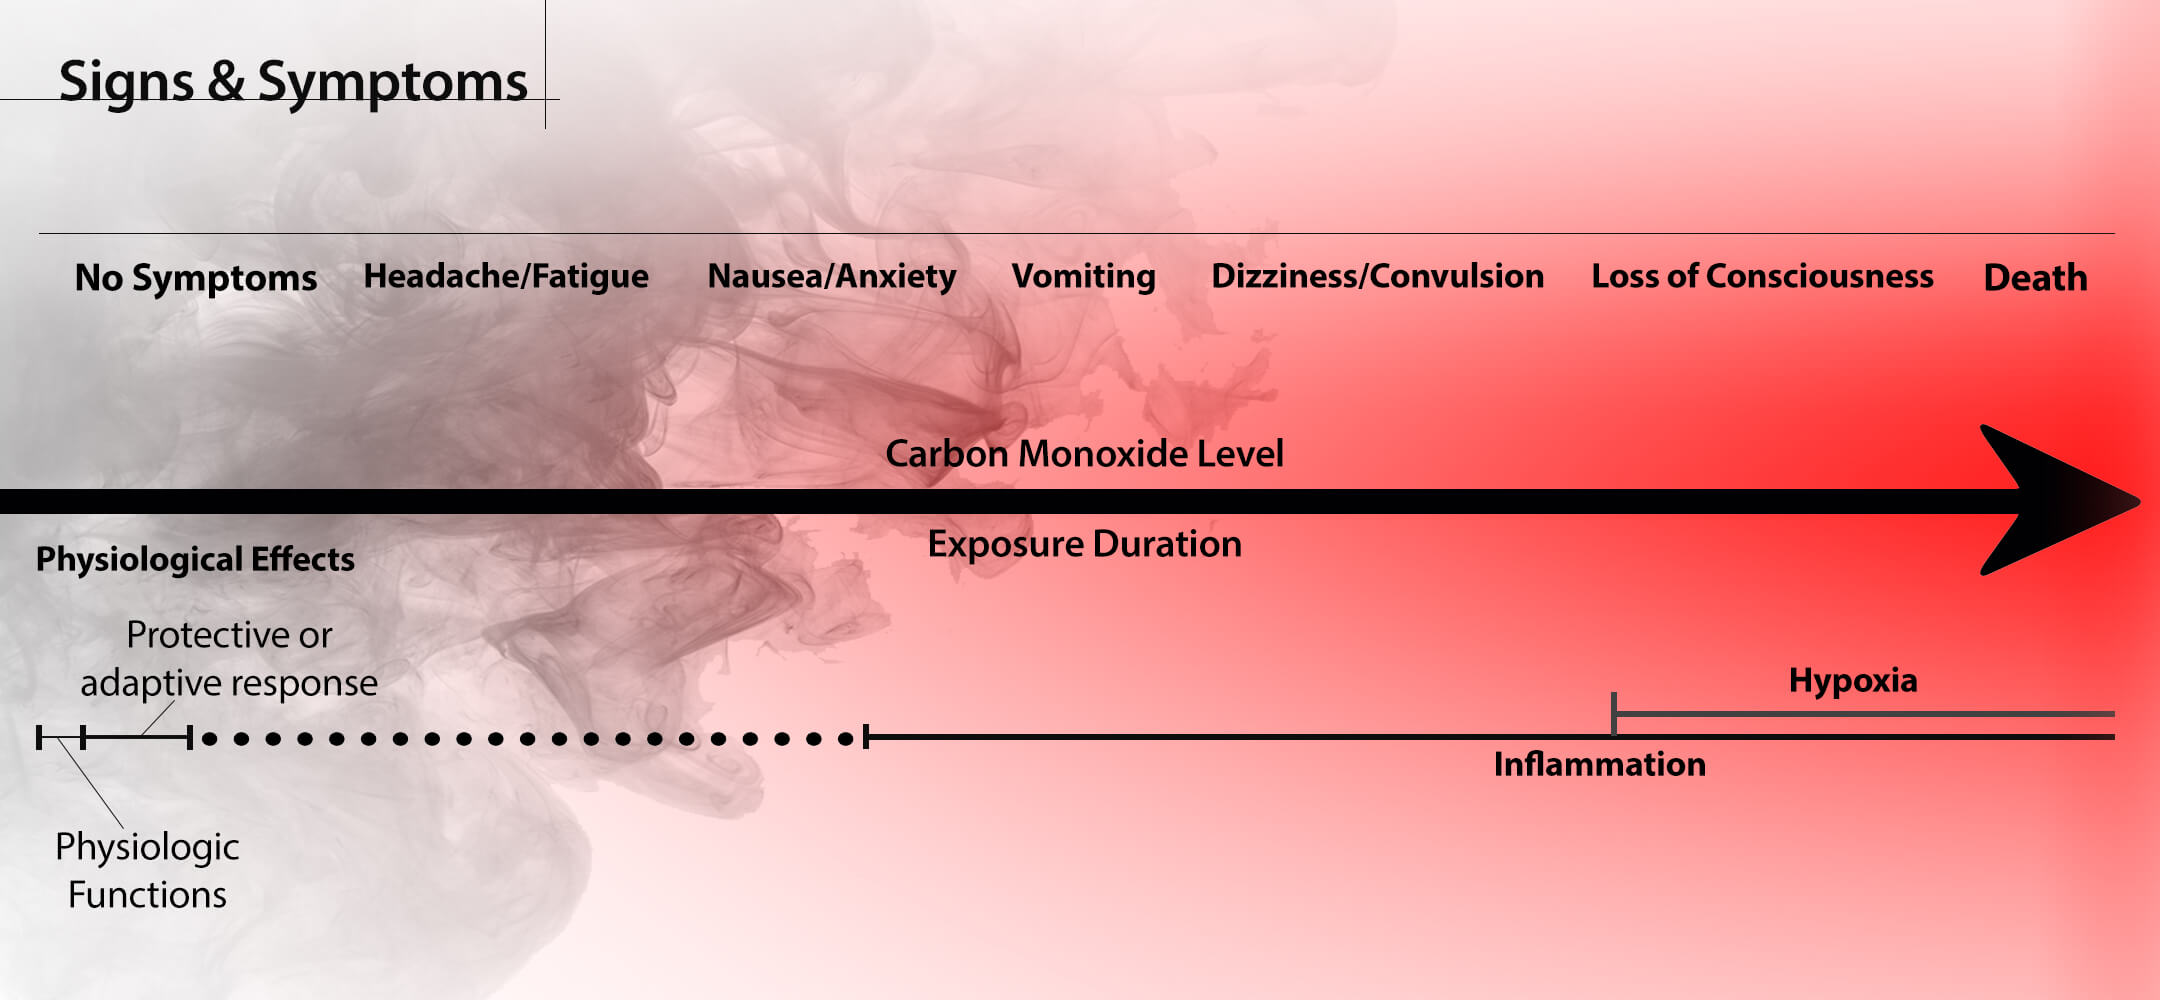 signs and symptoms of carbon monoxide poisoning ford explorer